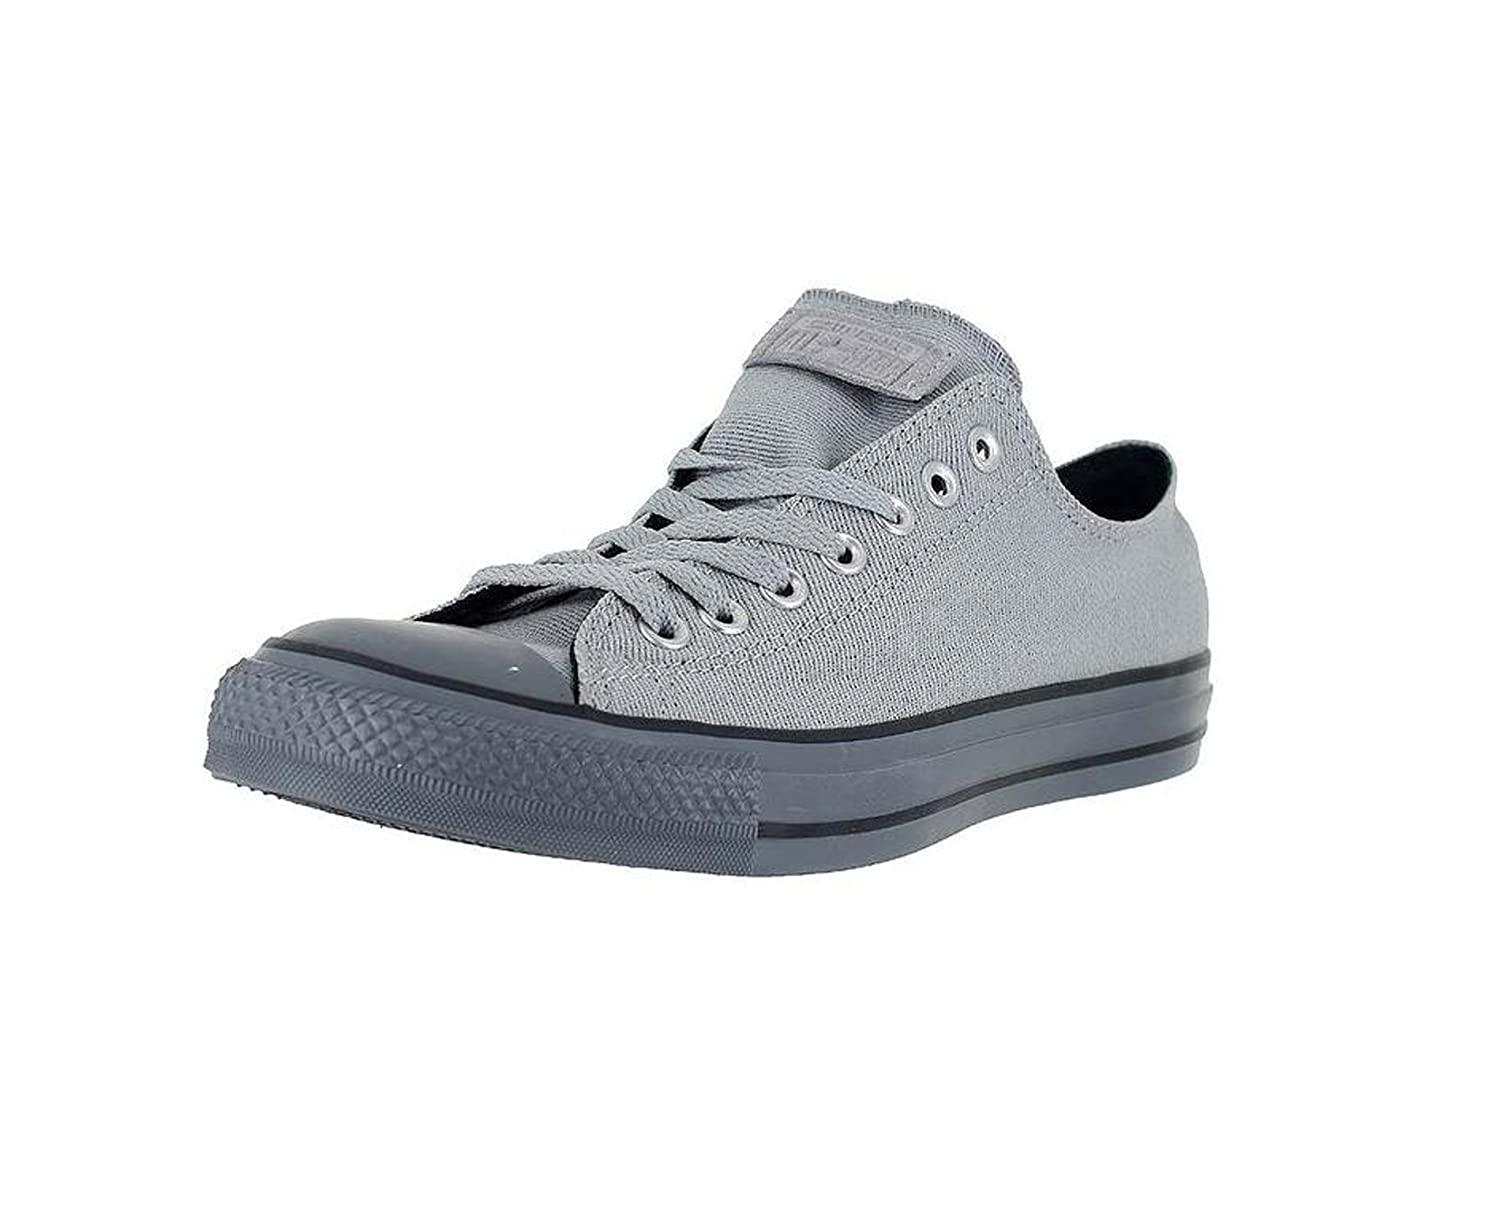 1eba41b0ac58 Converse Unisex Chuck Taylor All Star Low Top Dolphin Thunder Sneakers - 9.5  D(